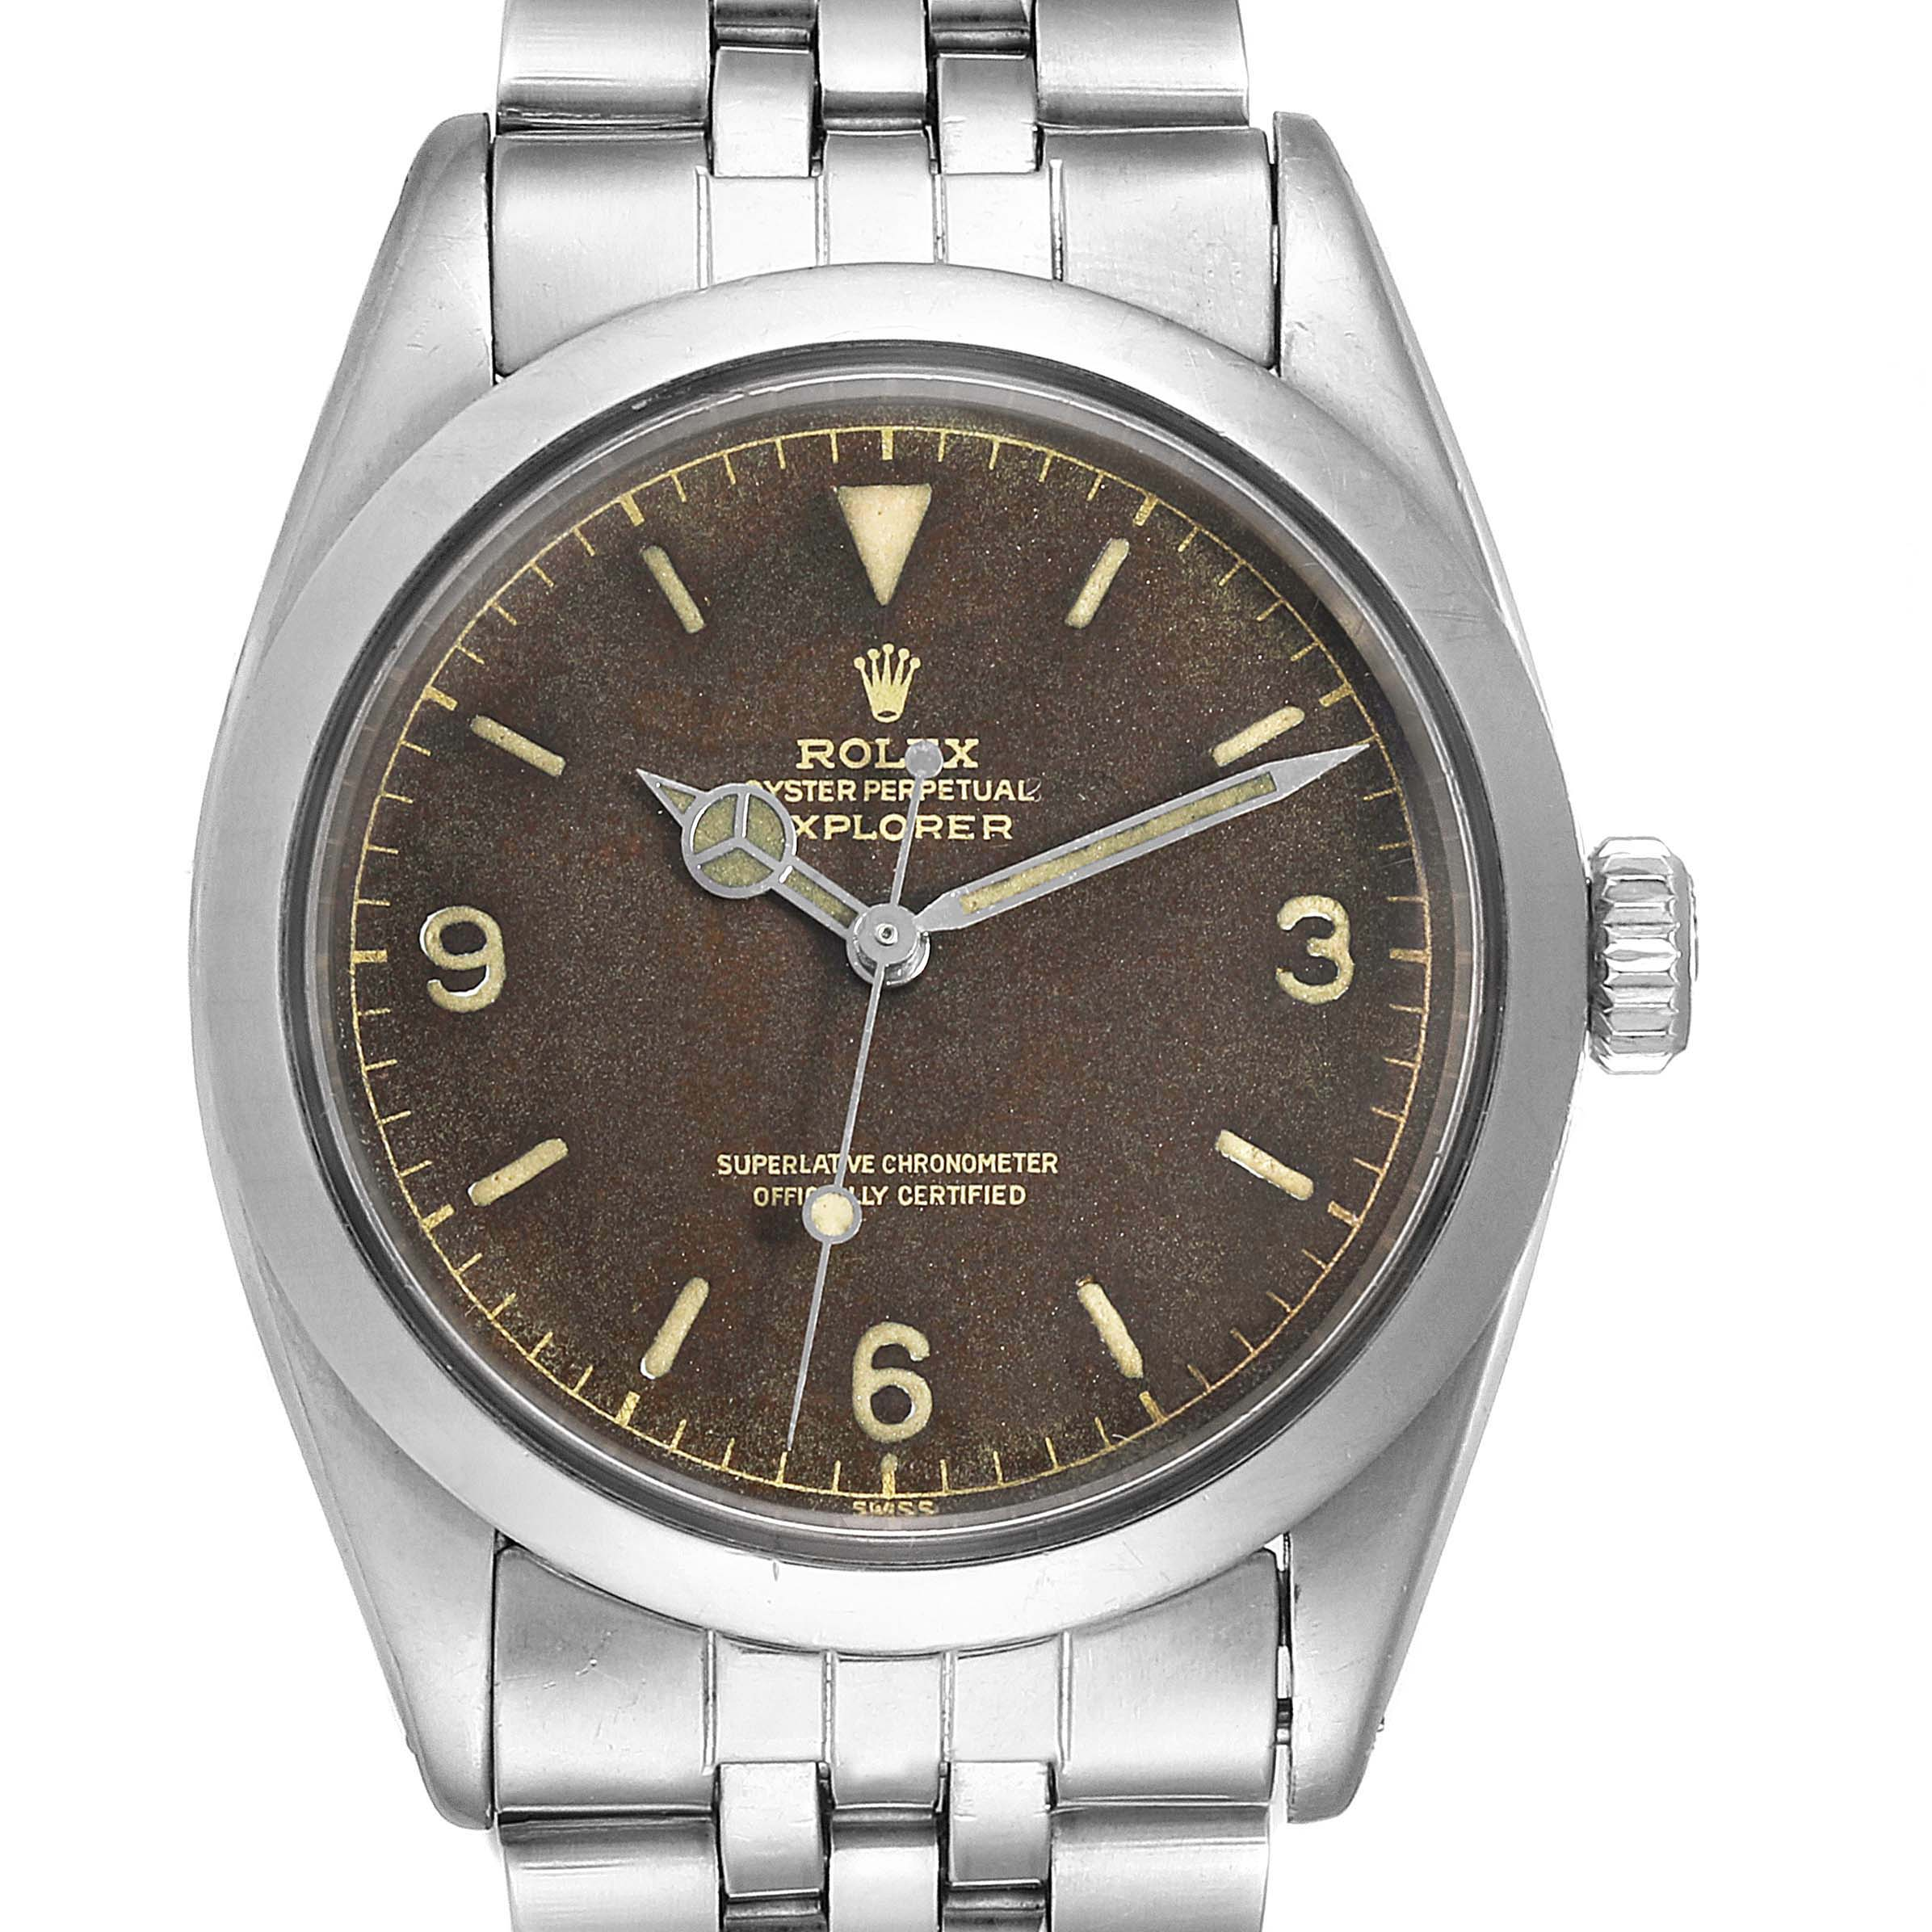 Rolex Explorer Chapter Ring Exclamation Point Tropical Vintage Watch 1016